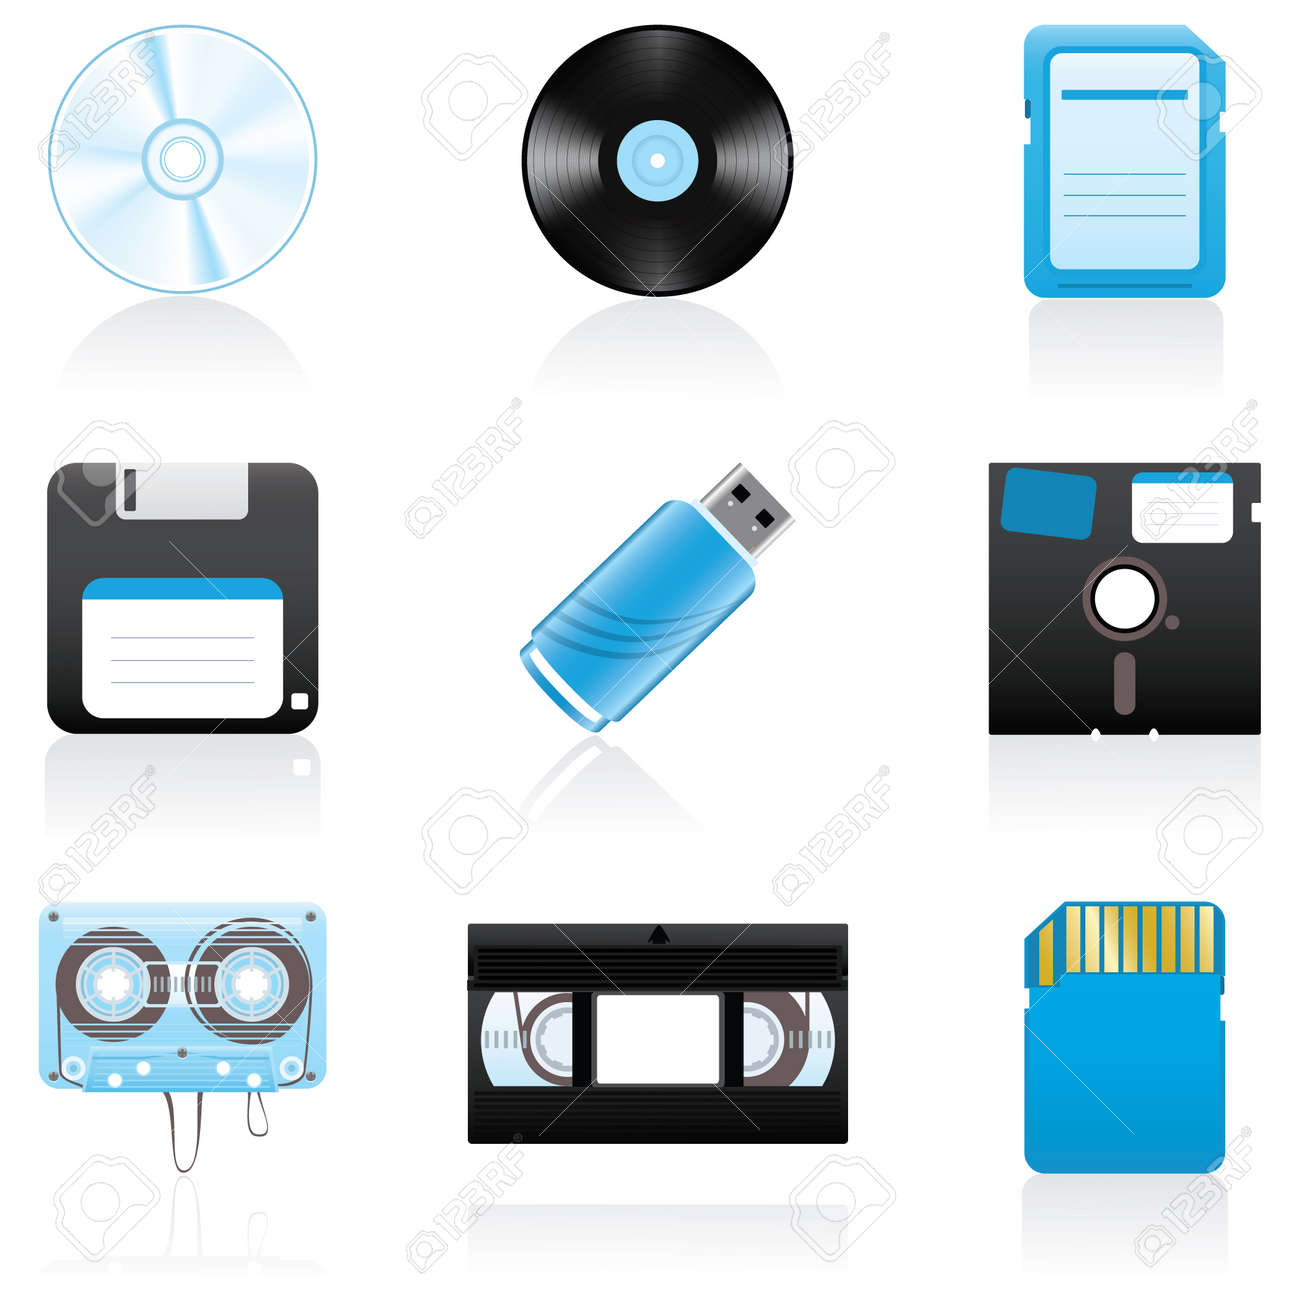 Set with storage media icons Stock Vector - 3559030